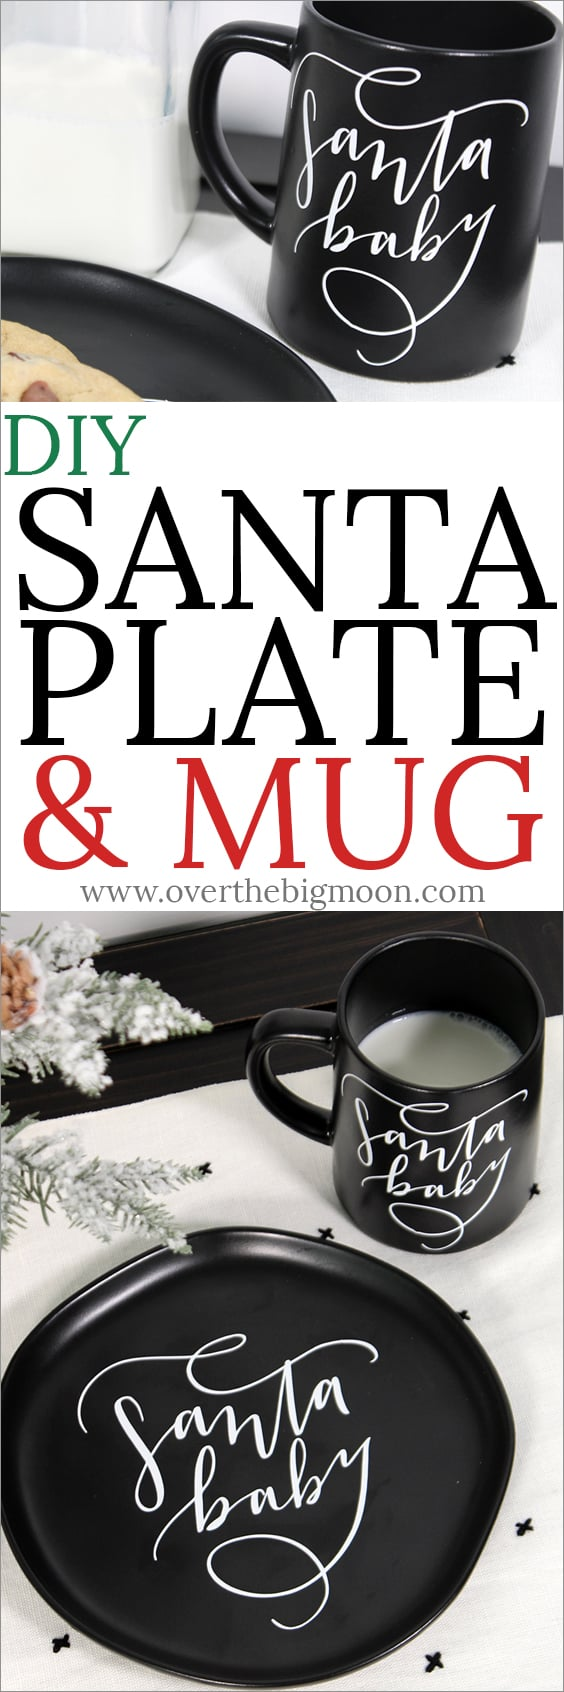 DIY Santa Plate & Mug - purchase your favorite plate and mug and customize it for Santa! Tutorial and cut file at overthebigmoon.com!